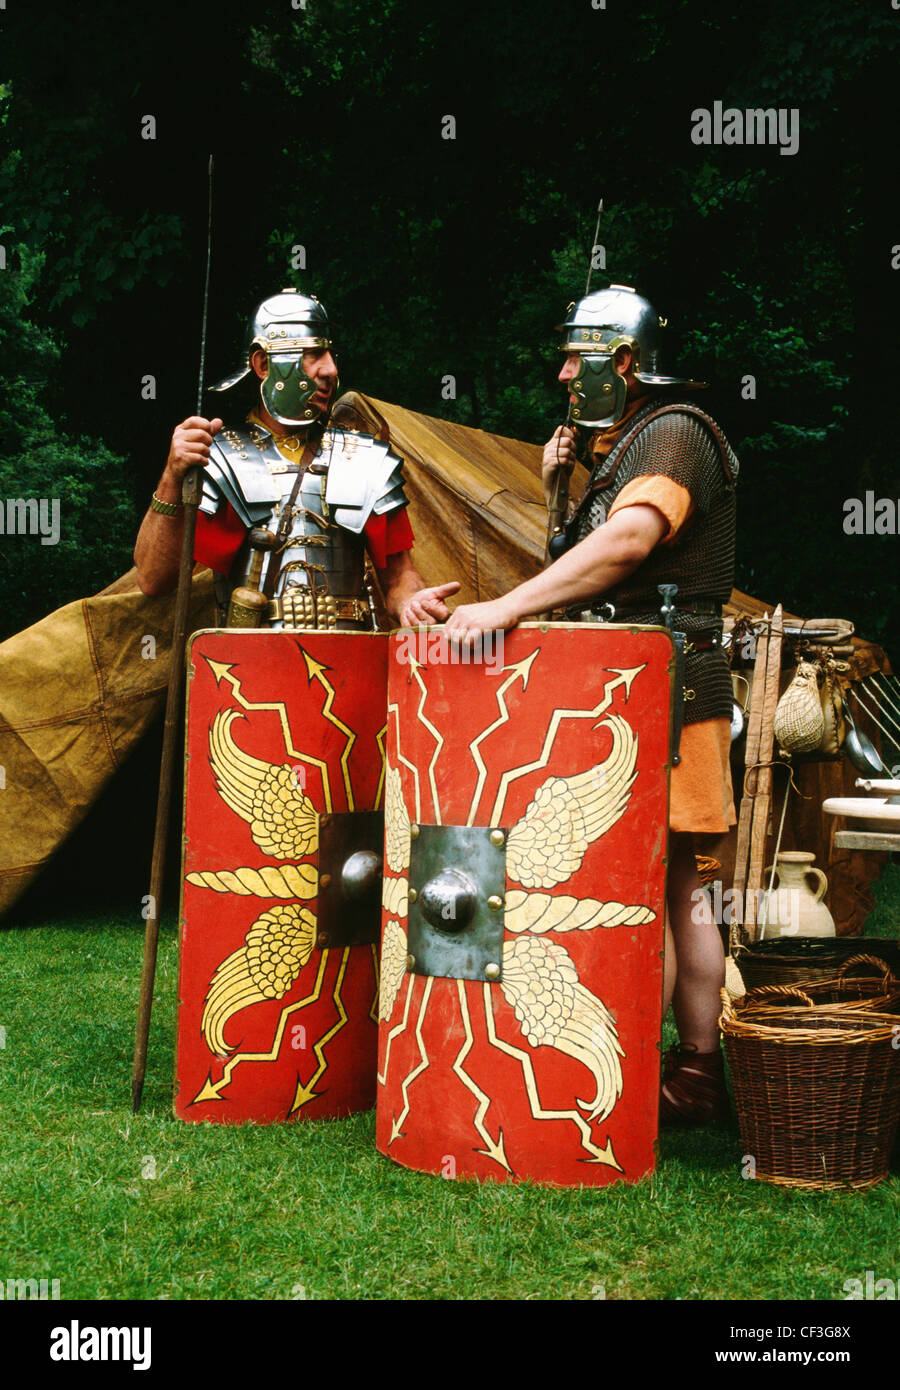 Two members of the Ermine Street Guard re-enactment society dressed as Roman legionaries standing outside their - Stock Image